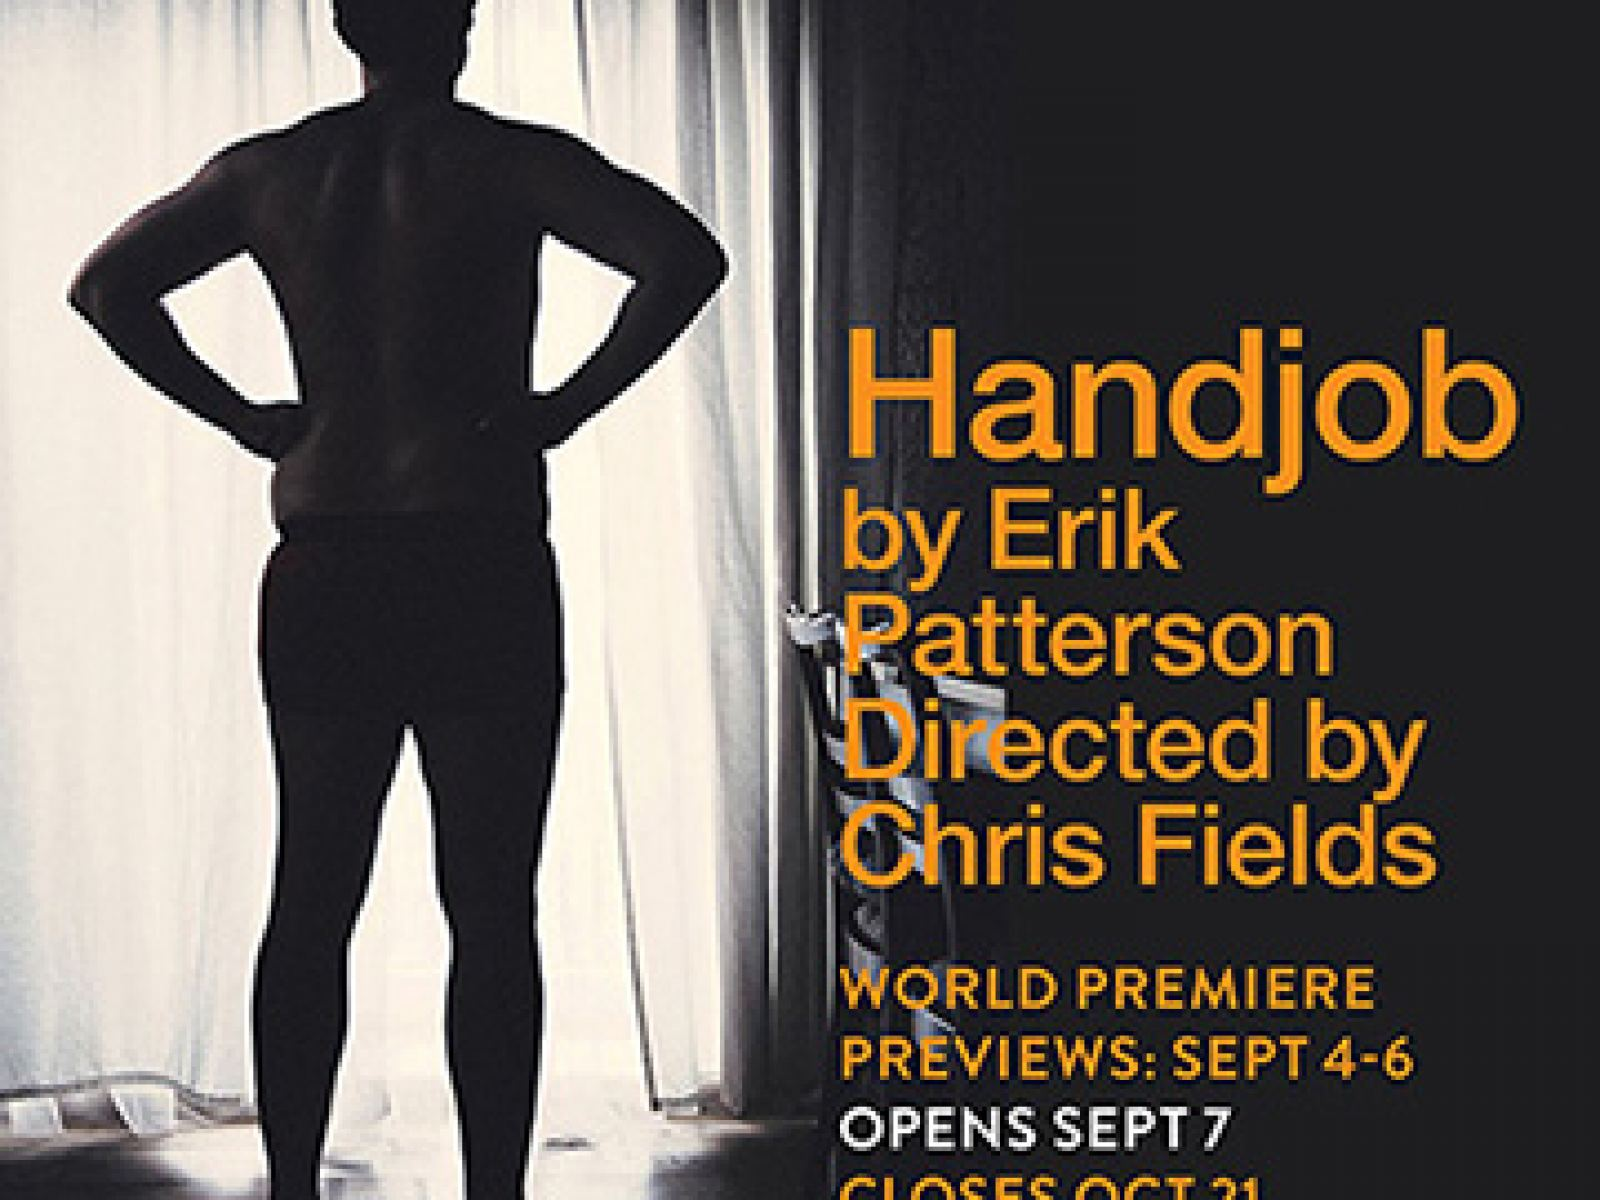 Handjob presented by Echo Theater Company